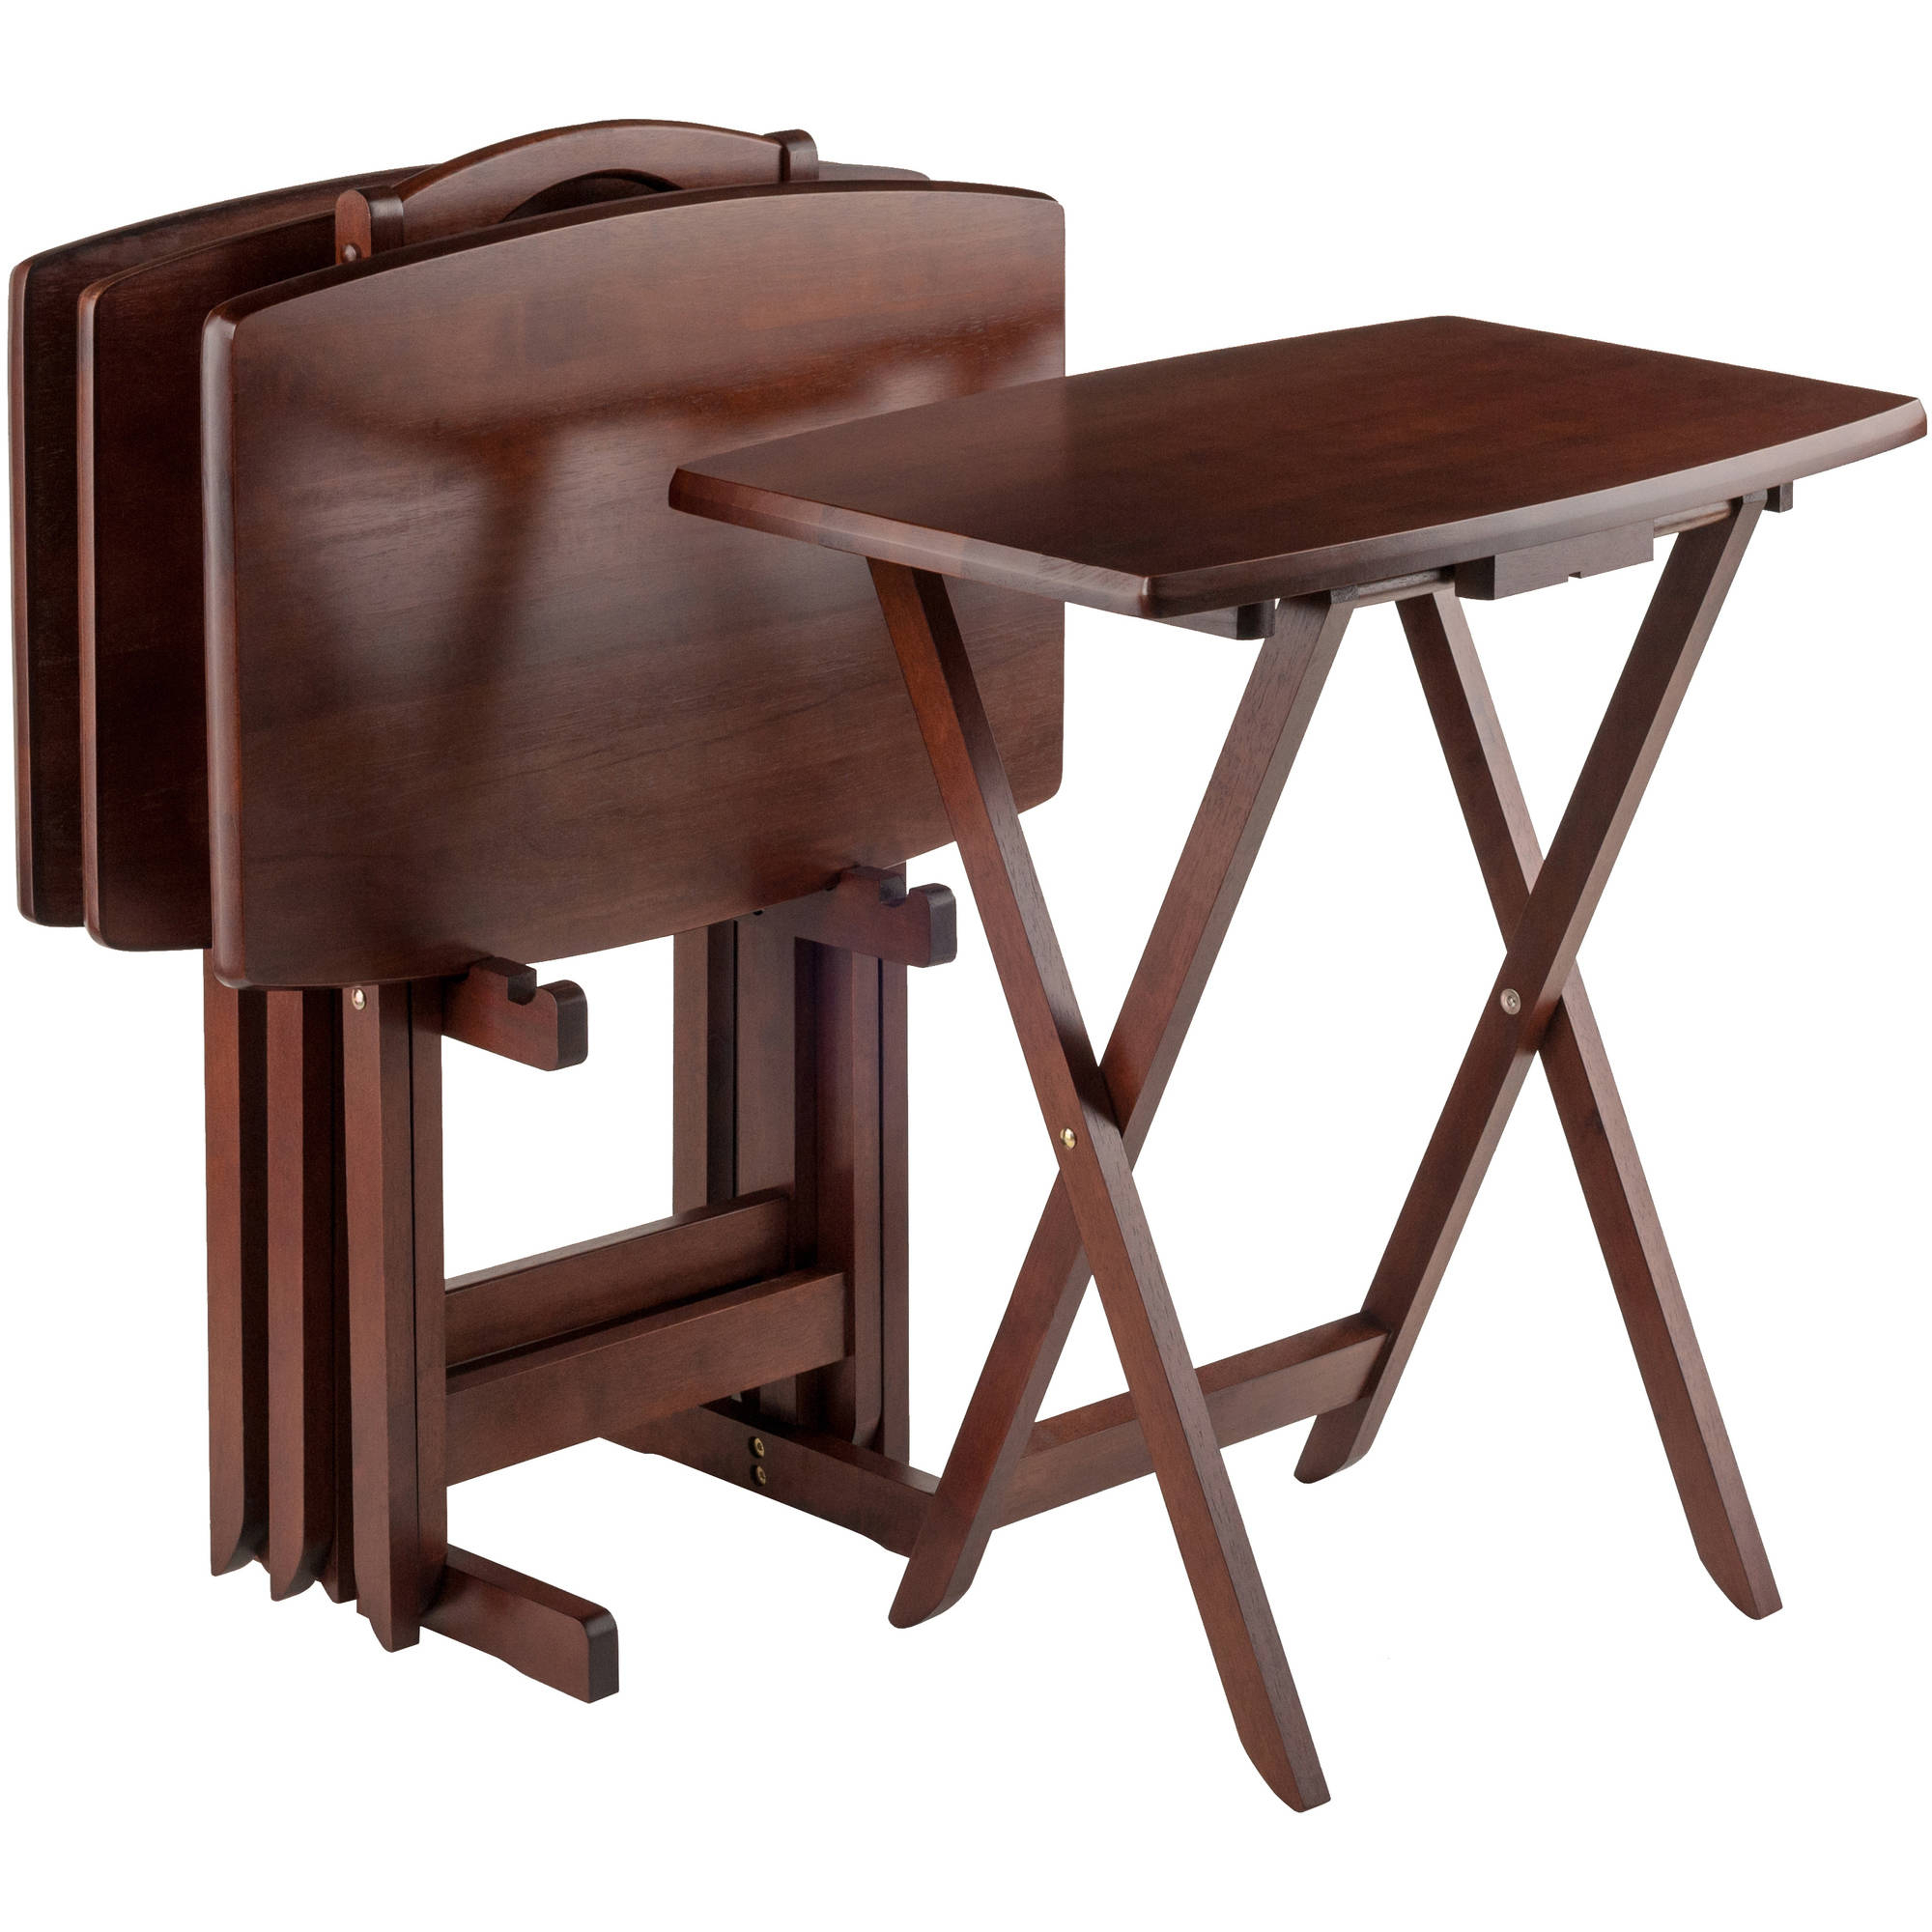 Folding Wooden Tv Tray Tables Inside 2017 Set Of 4 Portable Wood Tv Table Folding Tray Desk Serving Furniture (View 4 of 20)